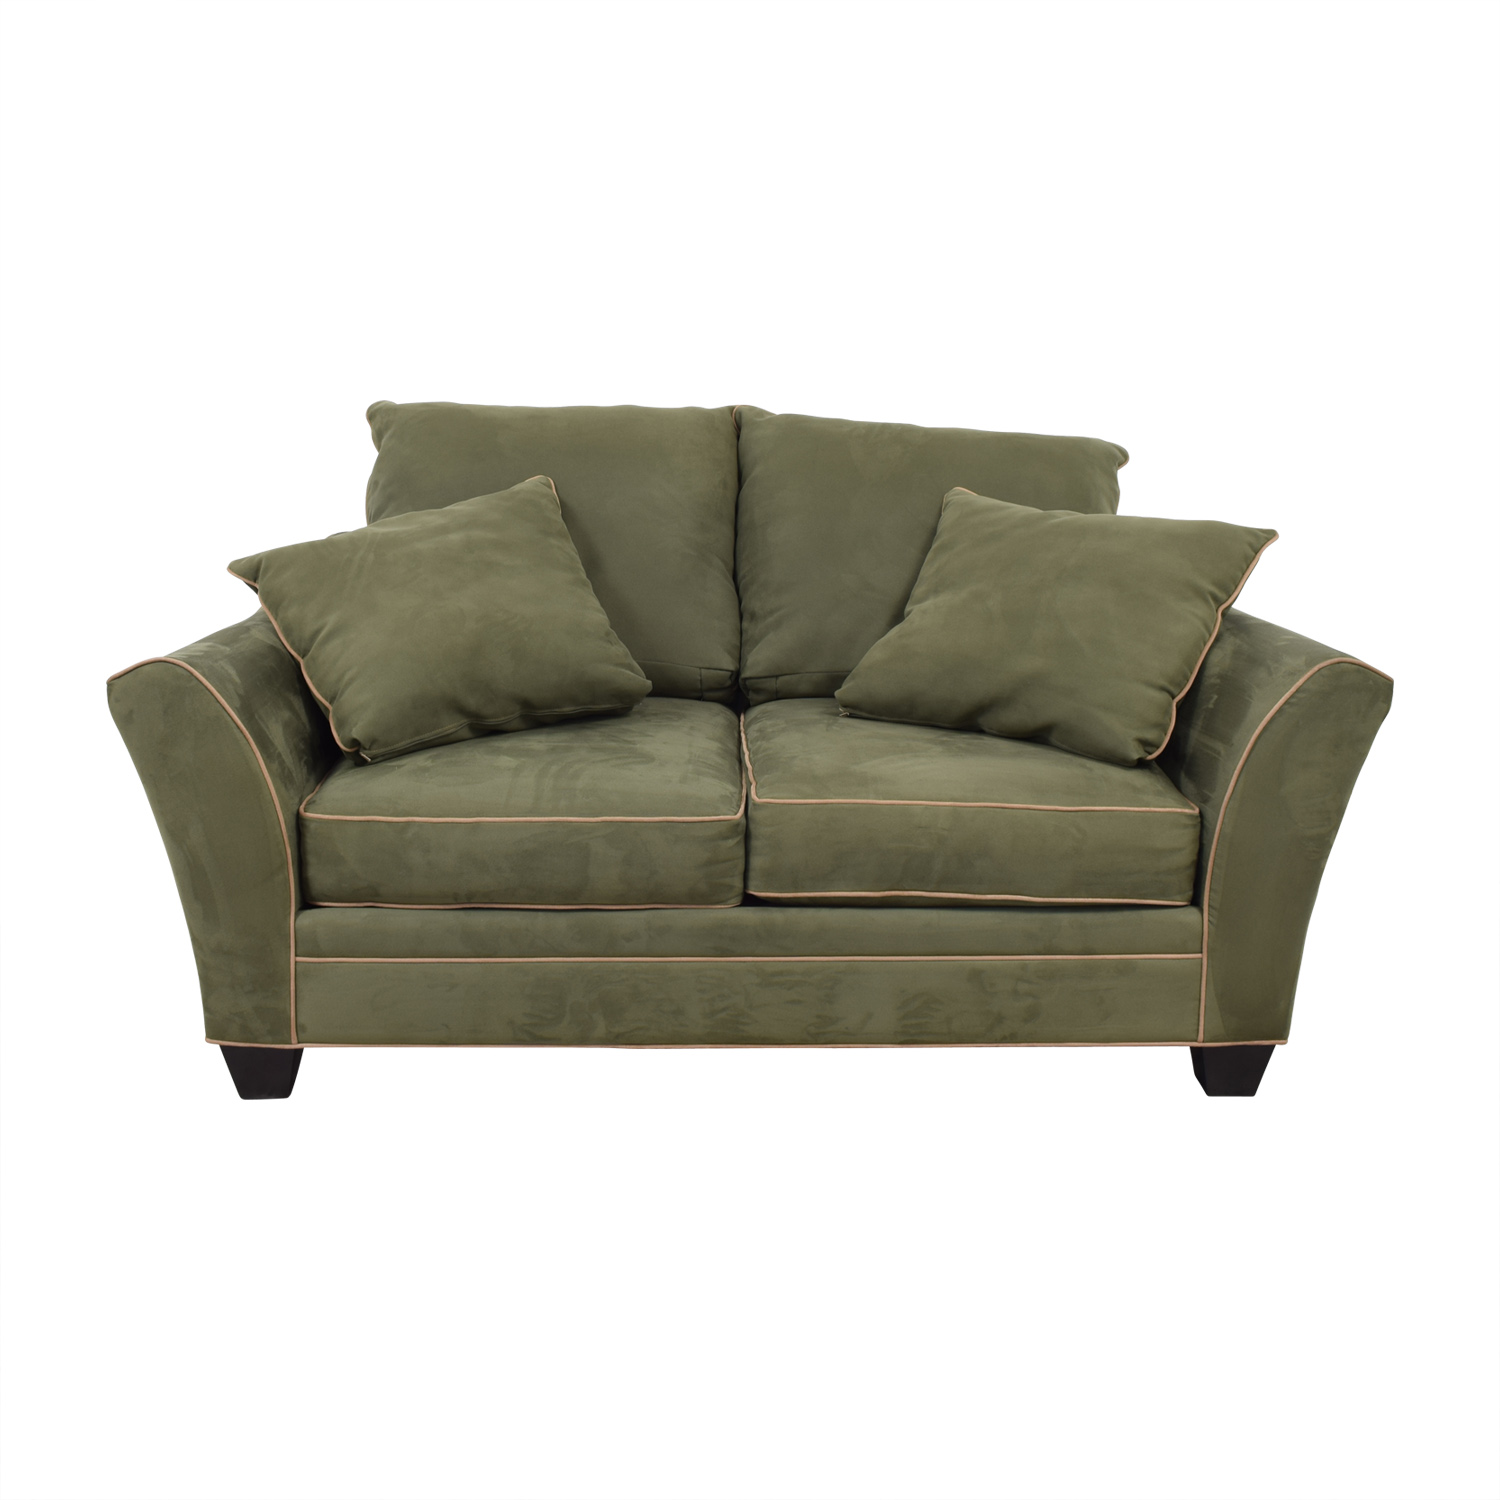 Raymour & Flanigan Raymour & Flanigan Briarwood Brown Two-Cushion Loveseat dimensions